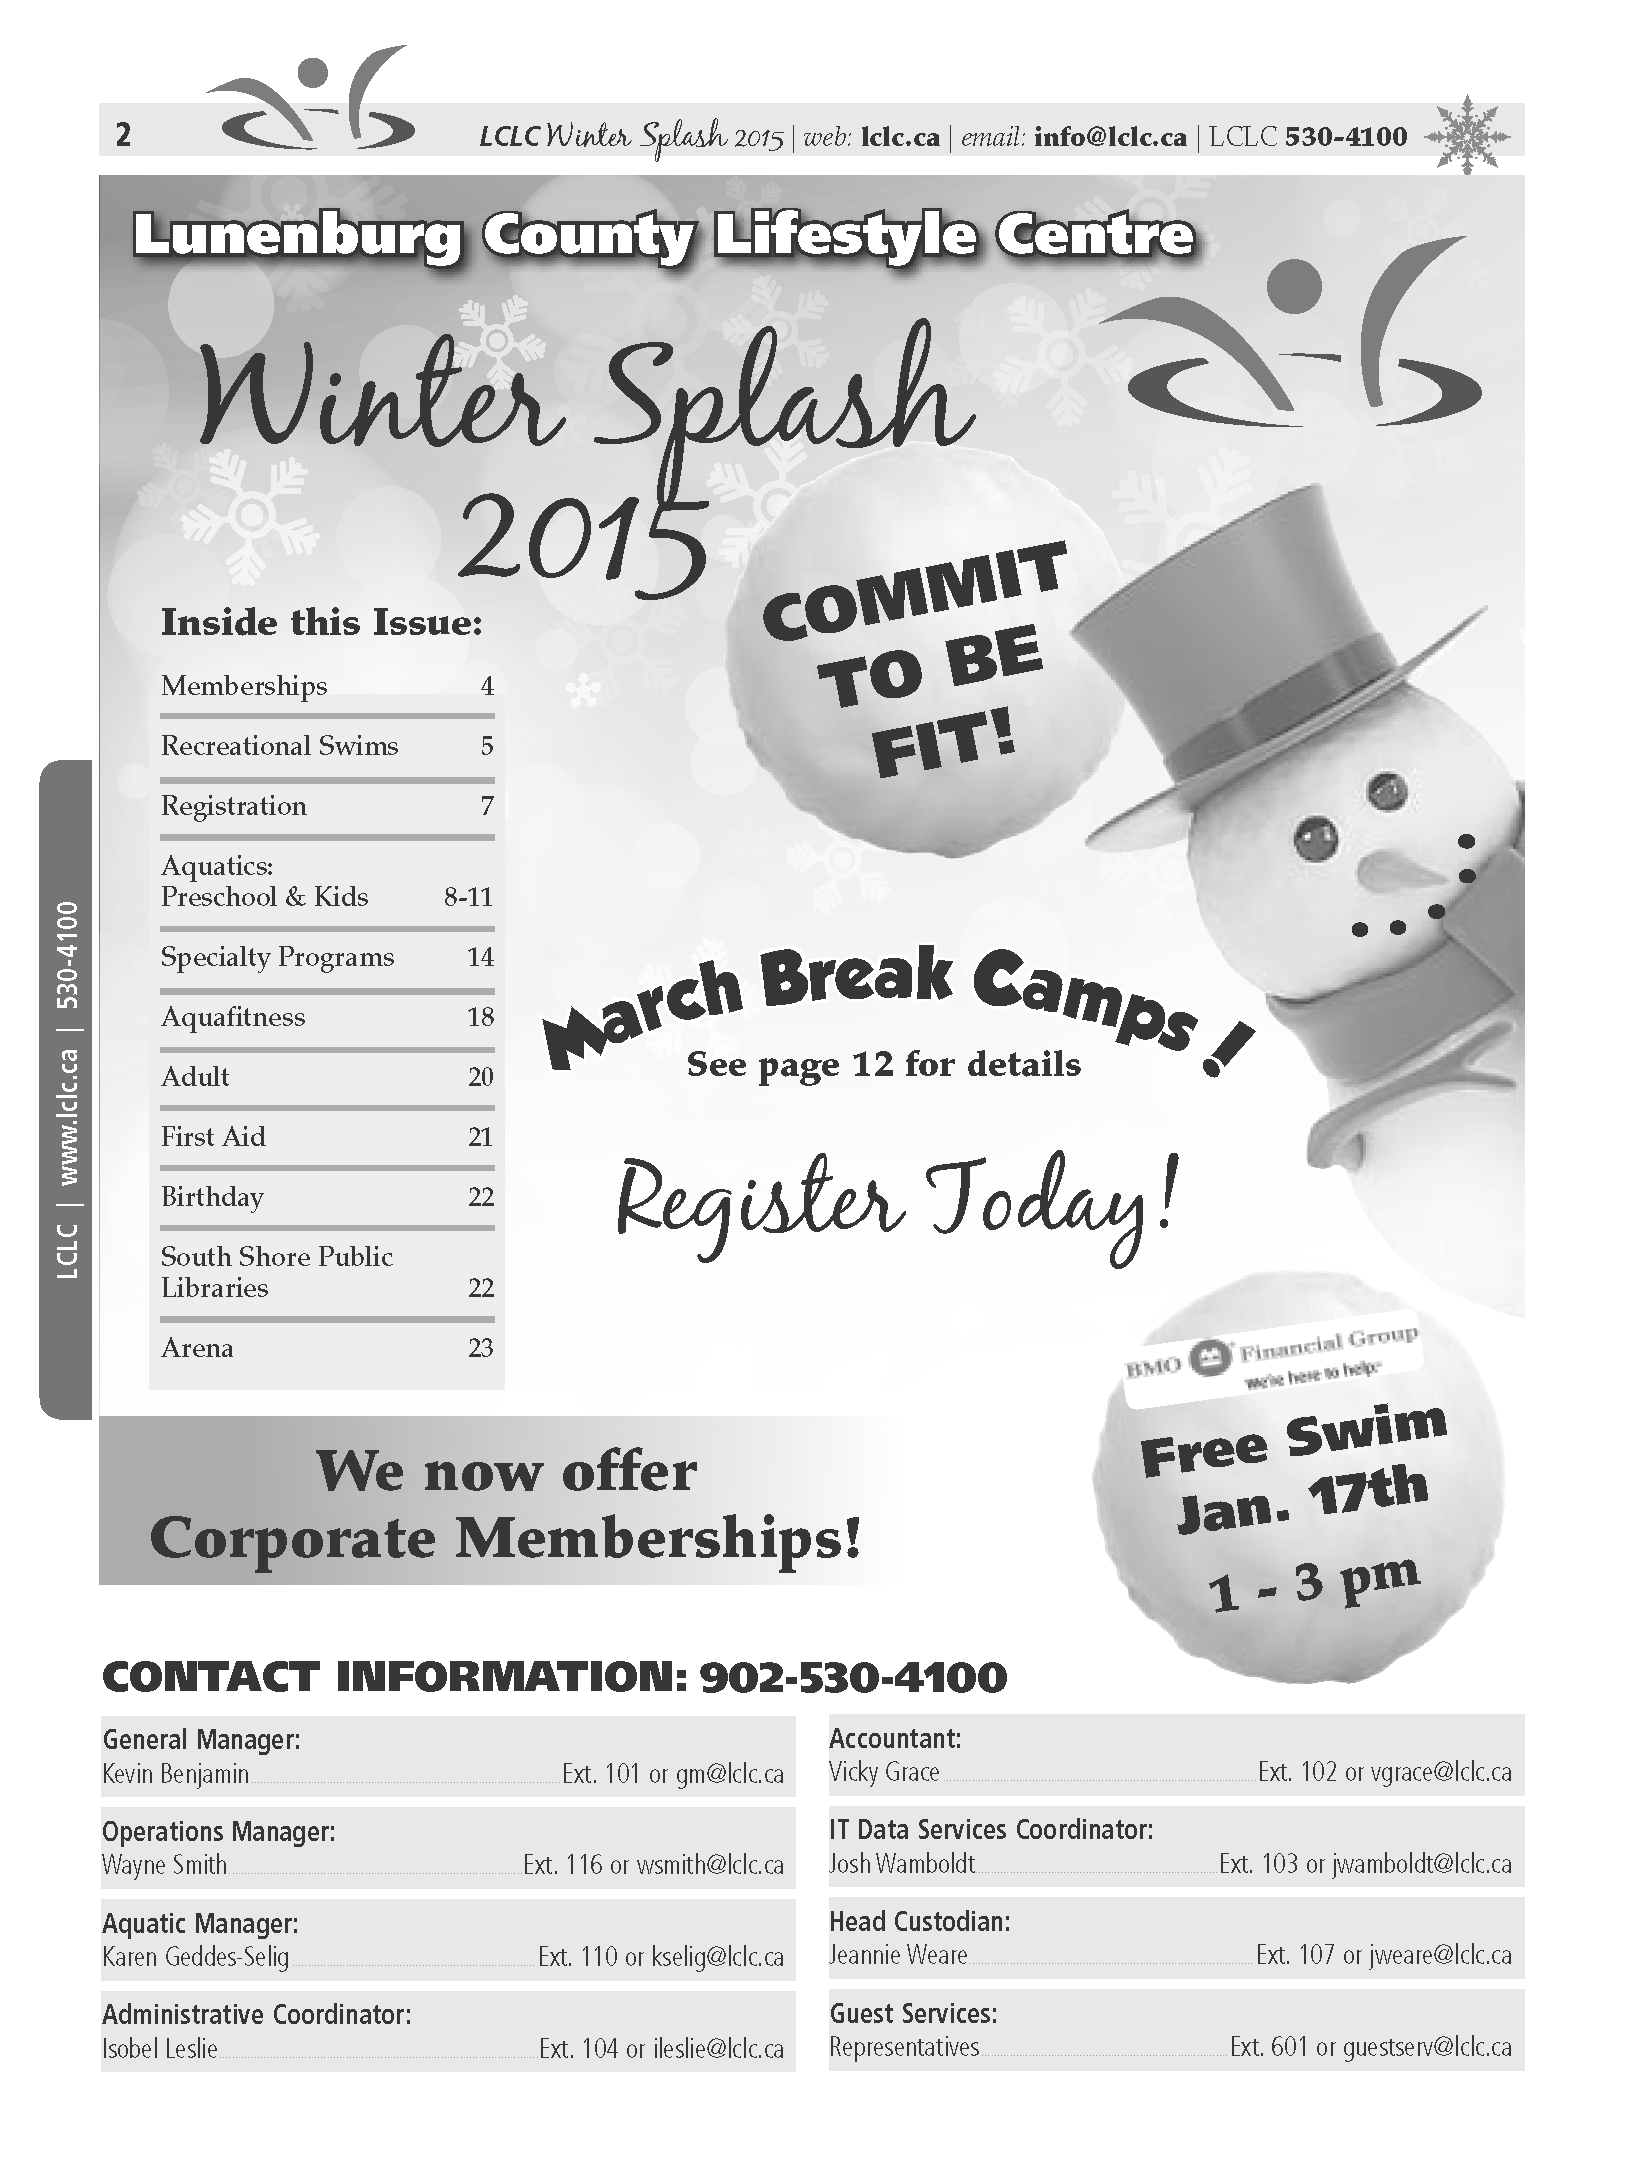 Winter Splash 2015